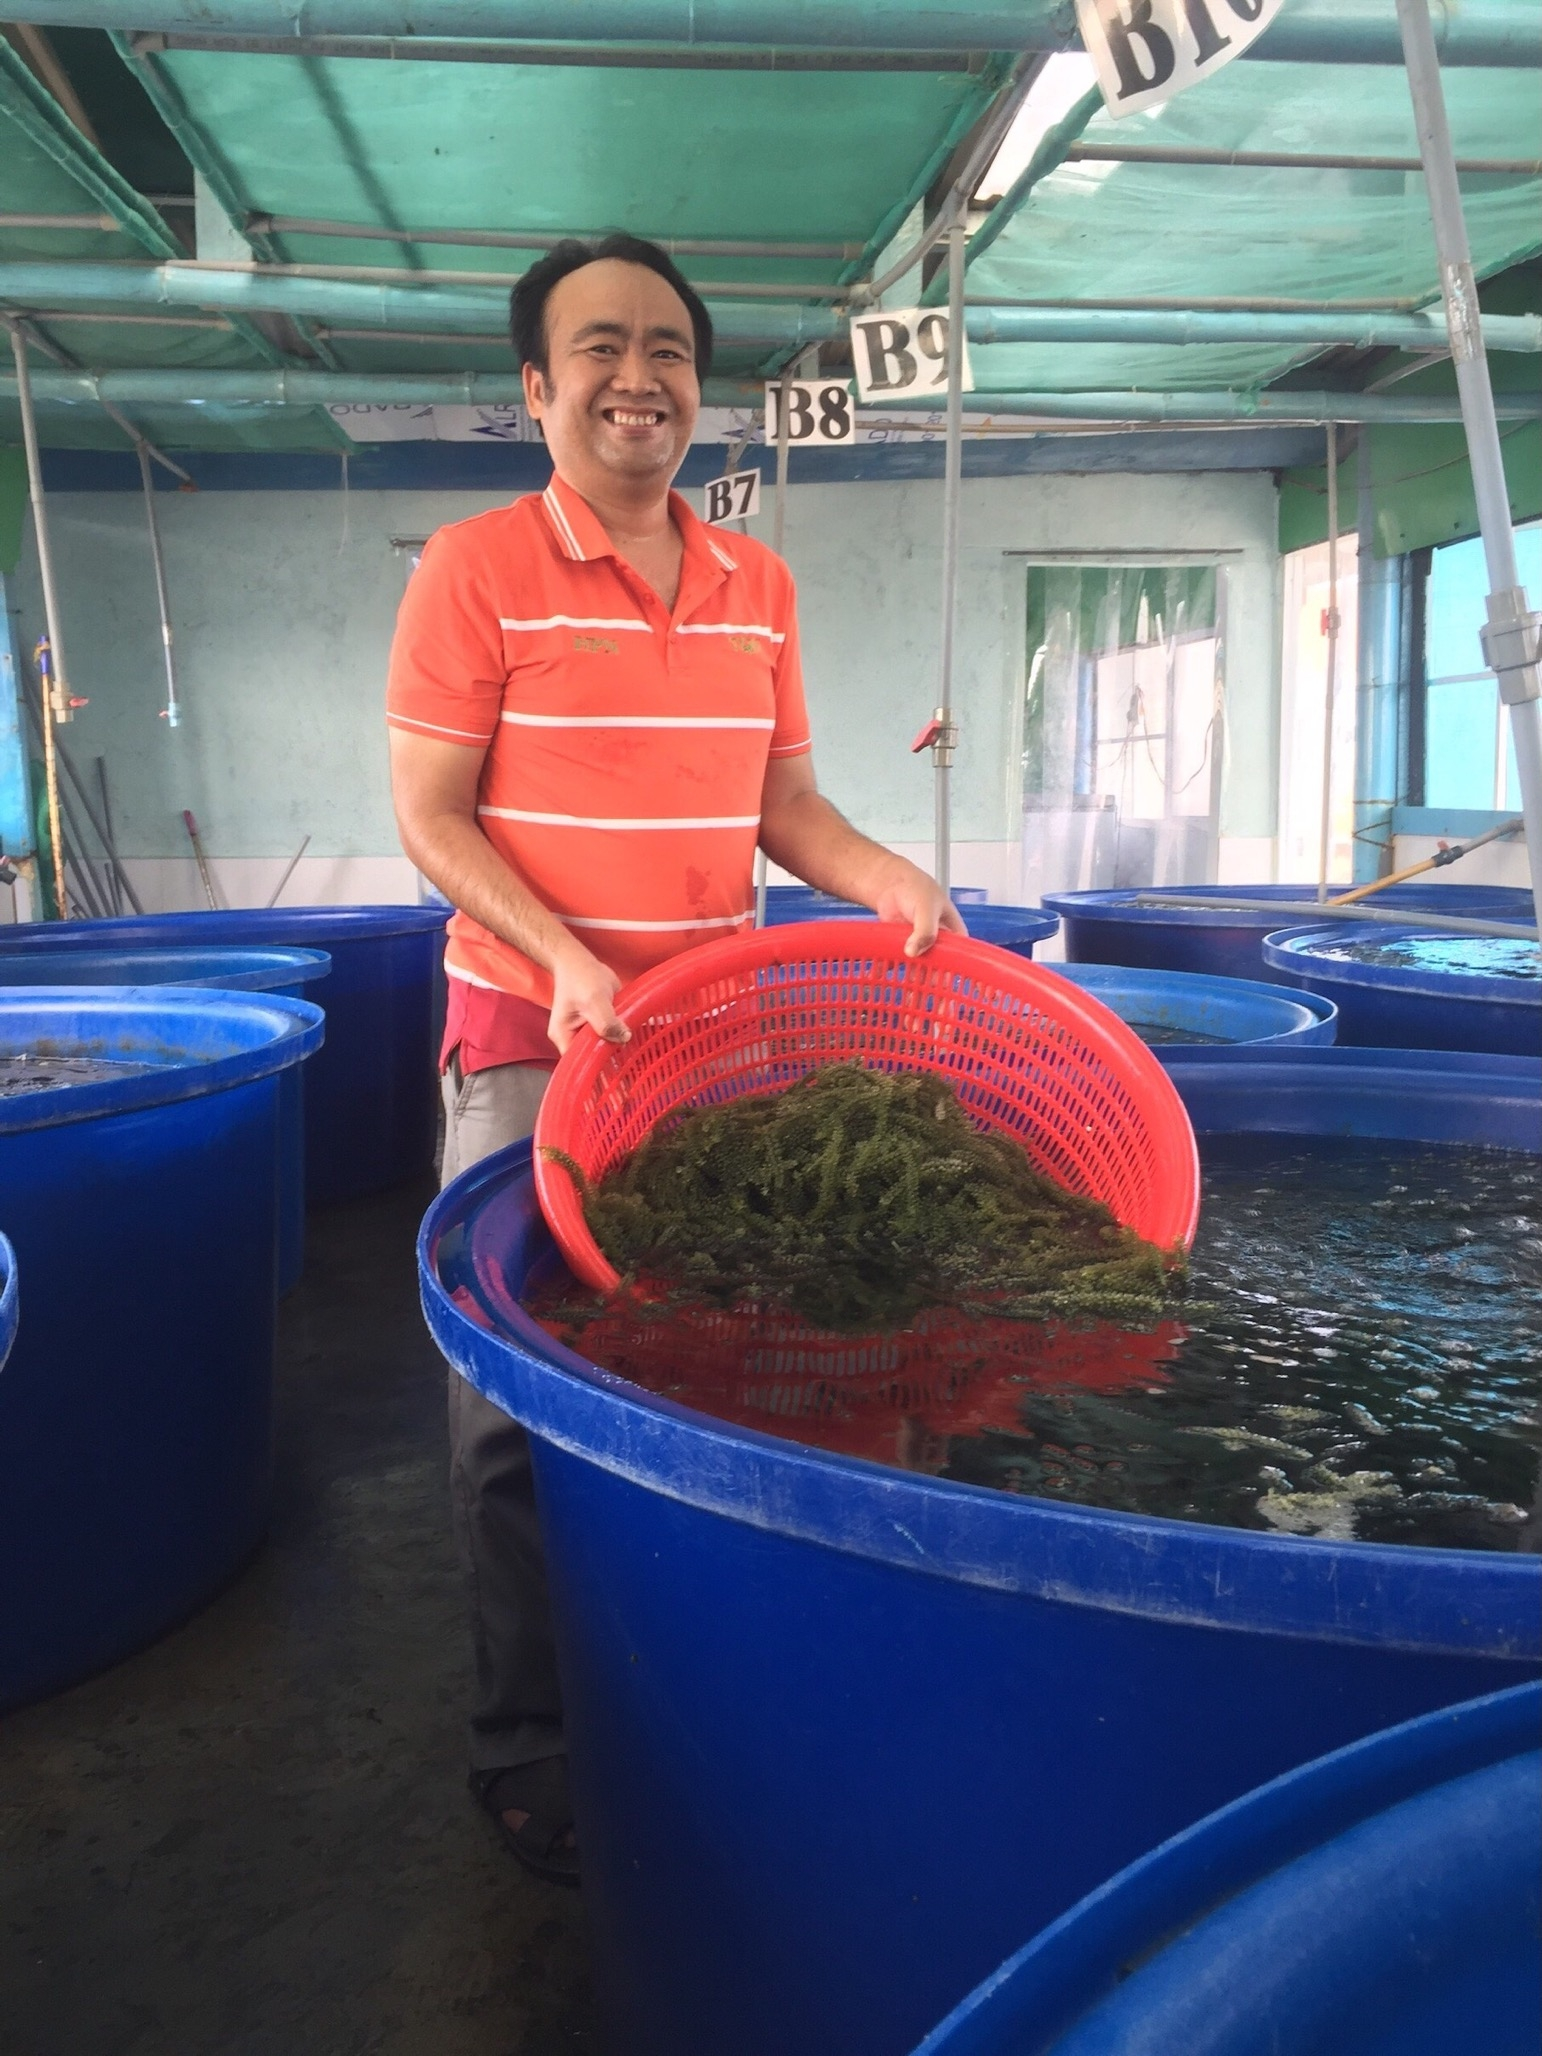 behind longevity sea grapes from petroleum to a pathway driven pioneer in aquaculture